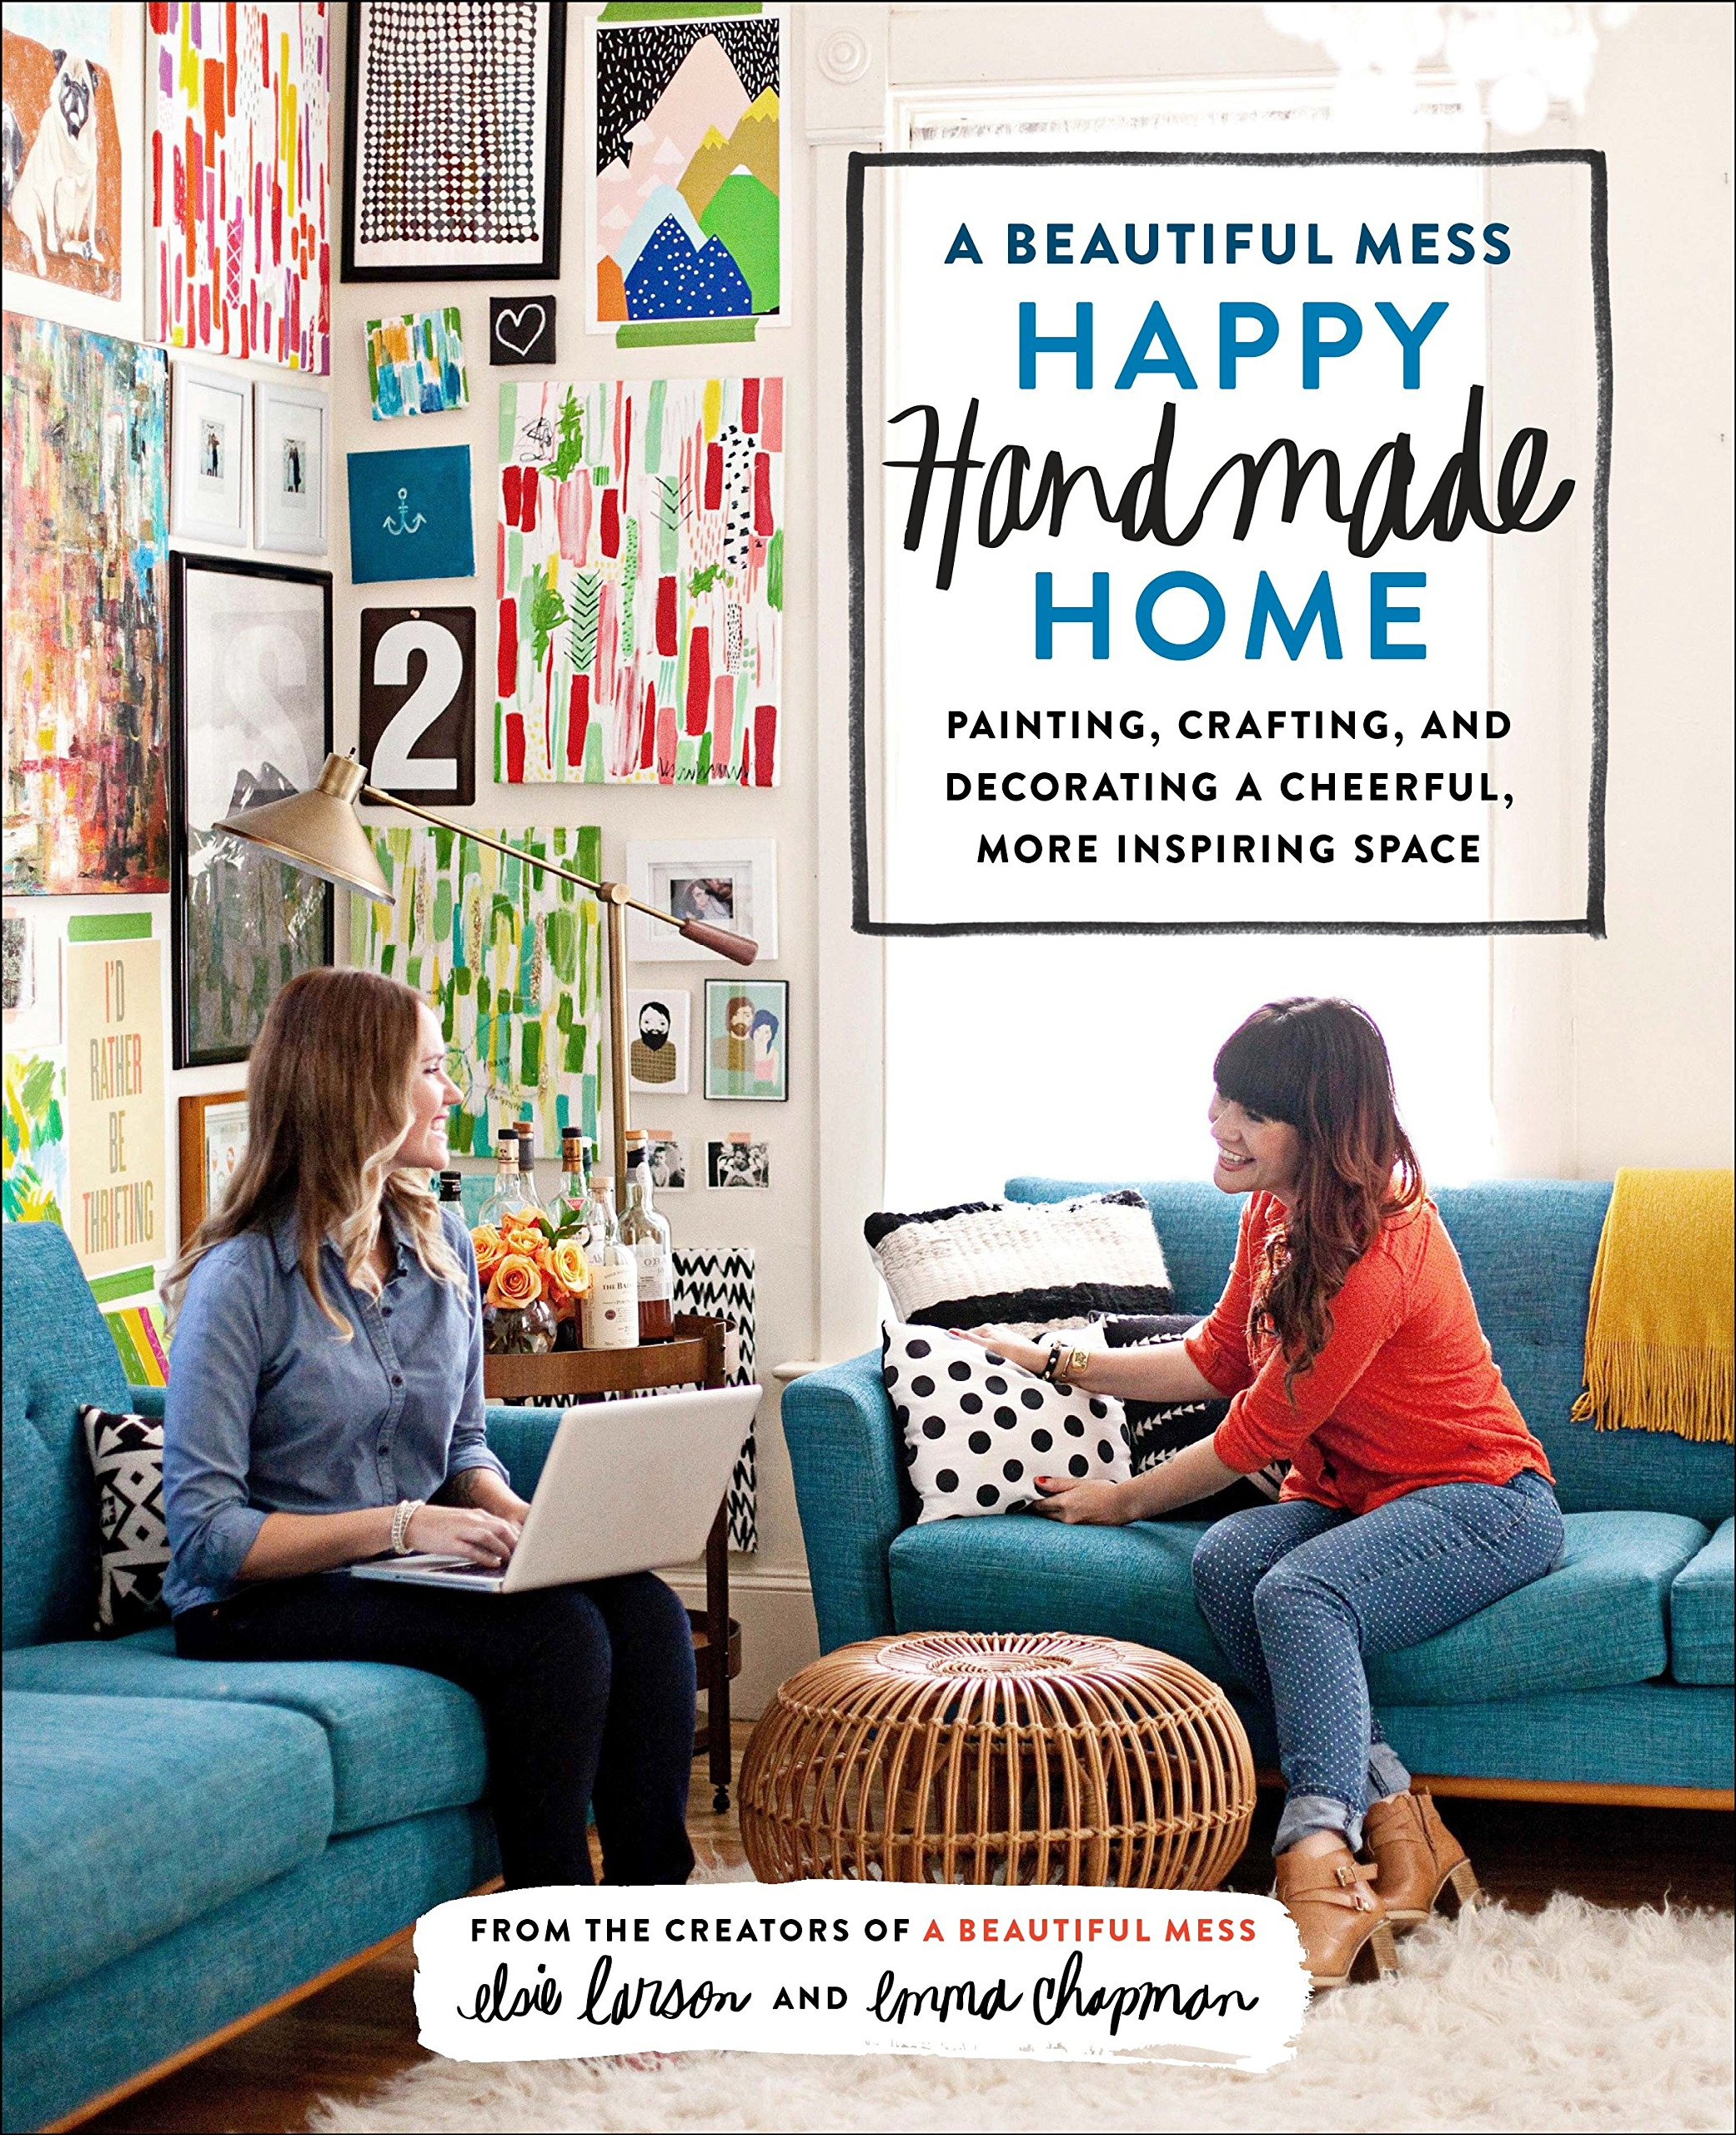 A Beautiful Mess Happy Handmade Home: Painting, Crafting ...